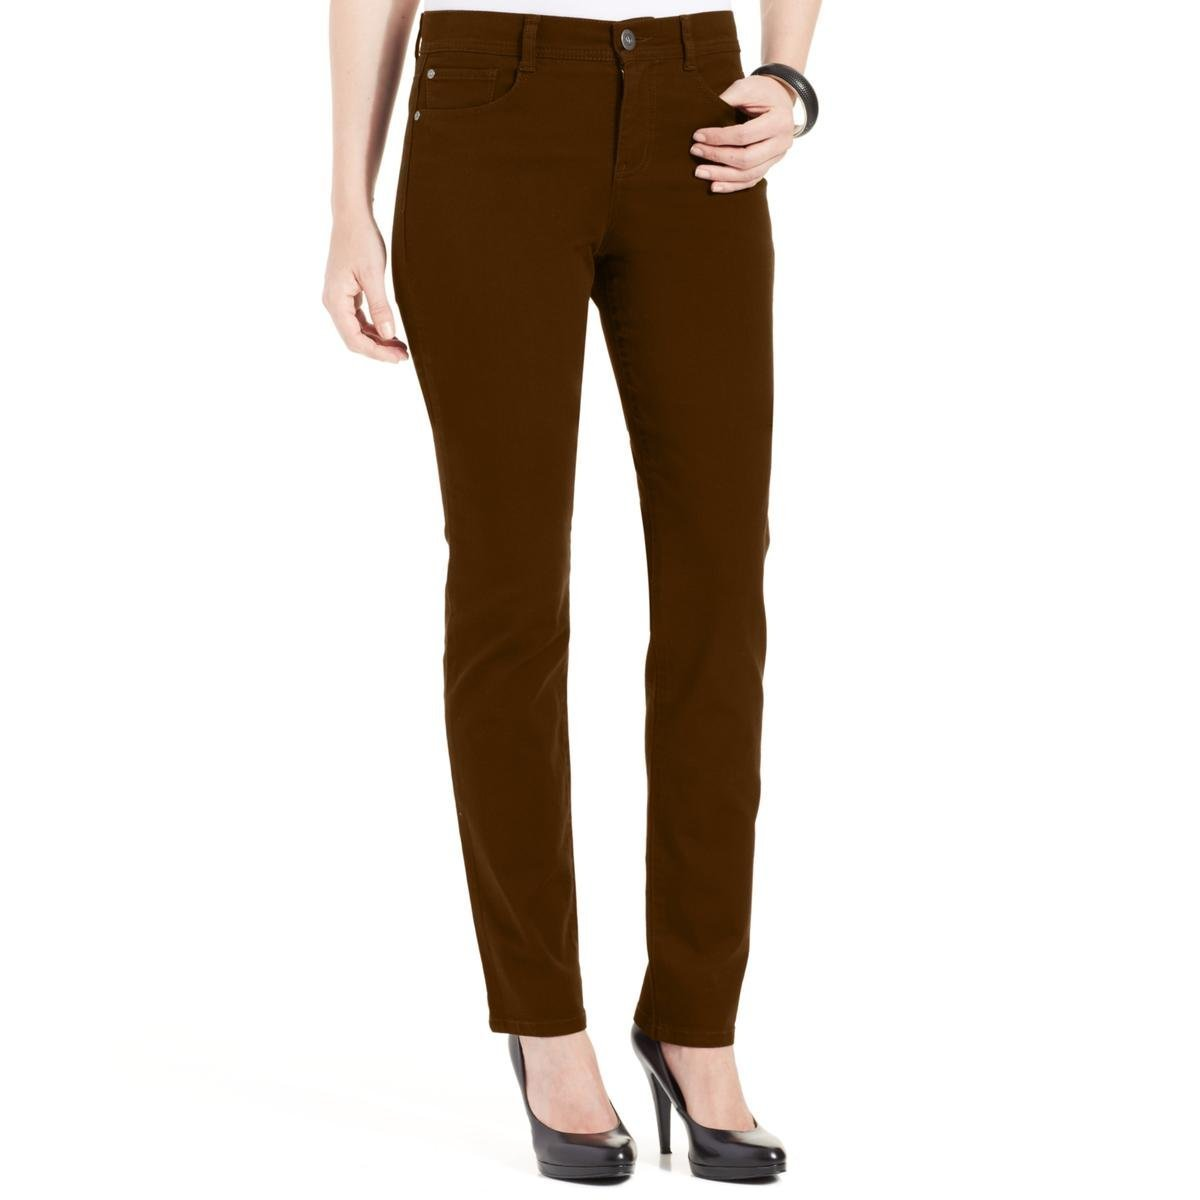 Style & Co.. Womens Petites Tummy Control High Rise Slim Leg Jeans Brown 4P